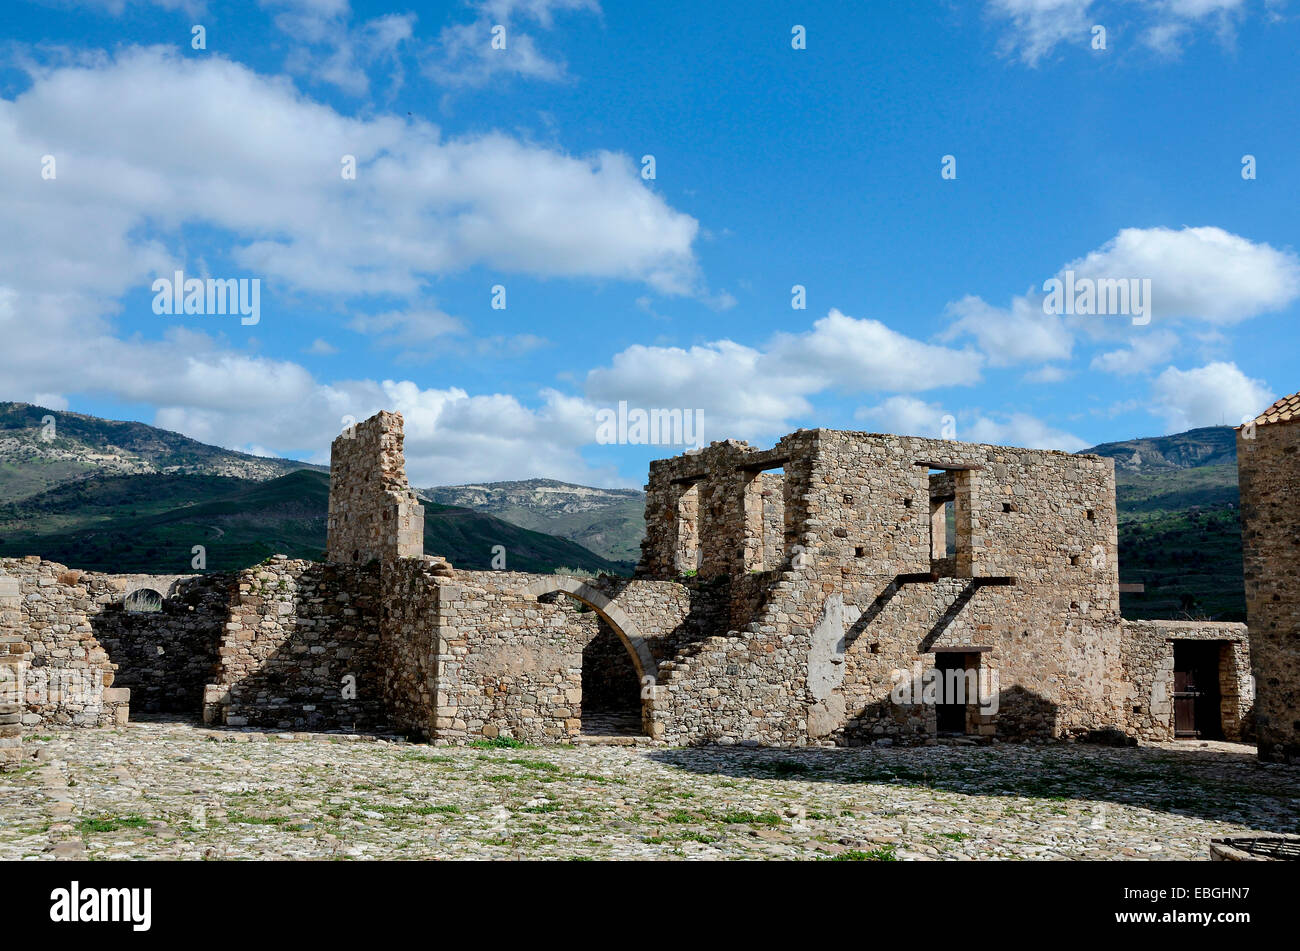 The outbuildings of the abandoned Monastery of Panagia tou Sinti in the Xeros Vally Cyprus Stock Photo